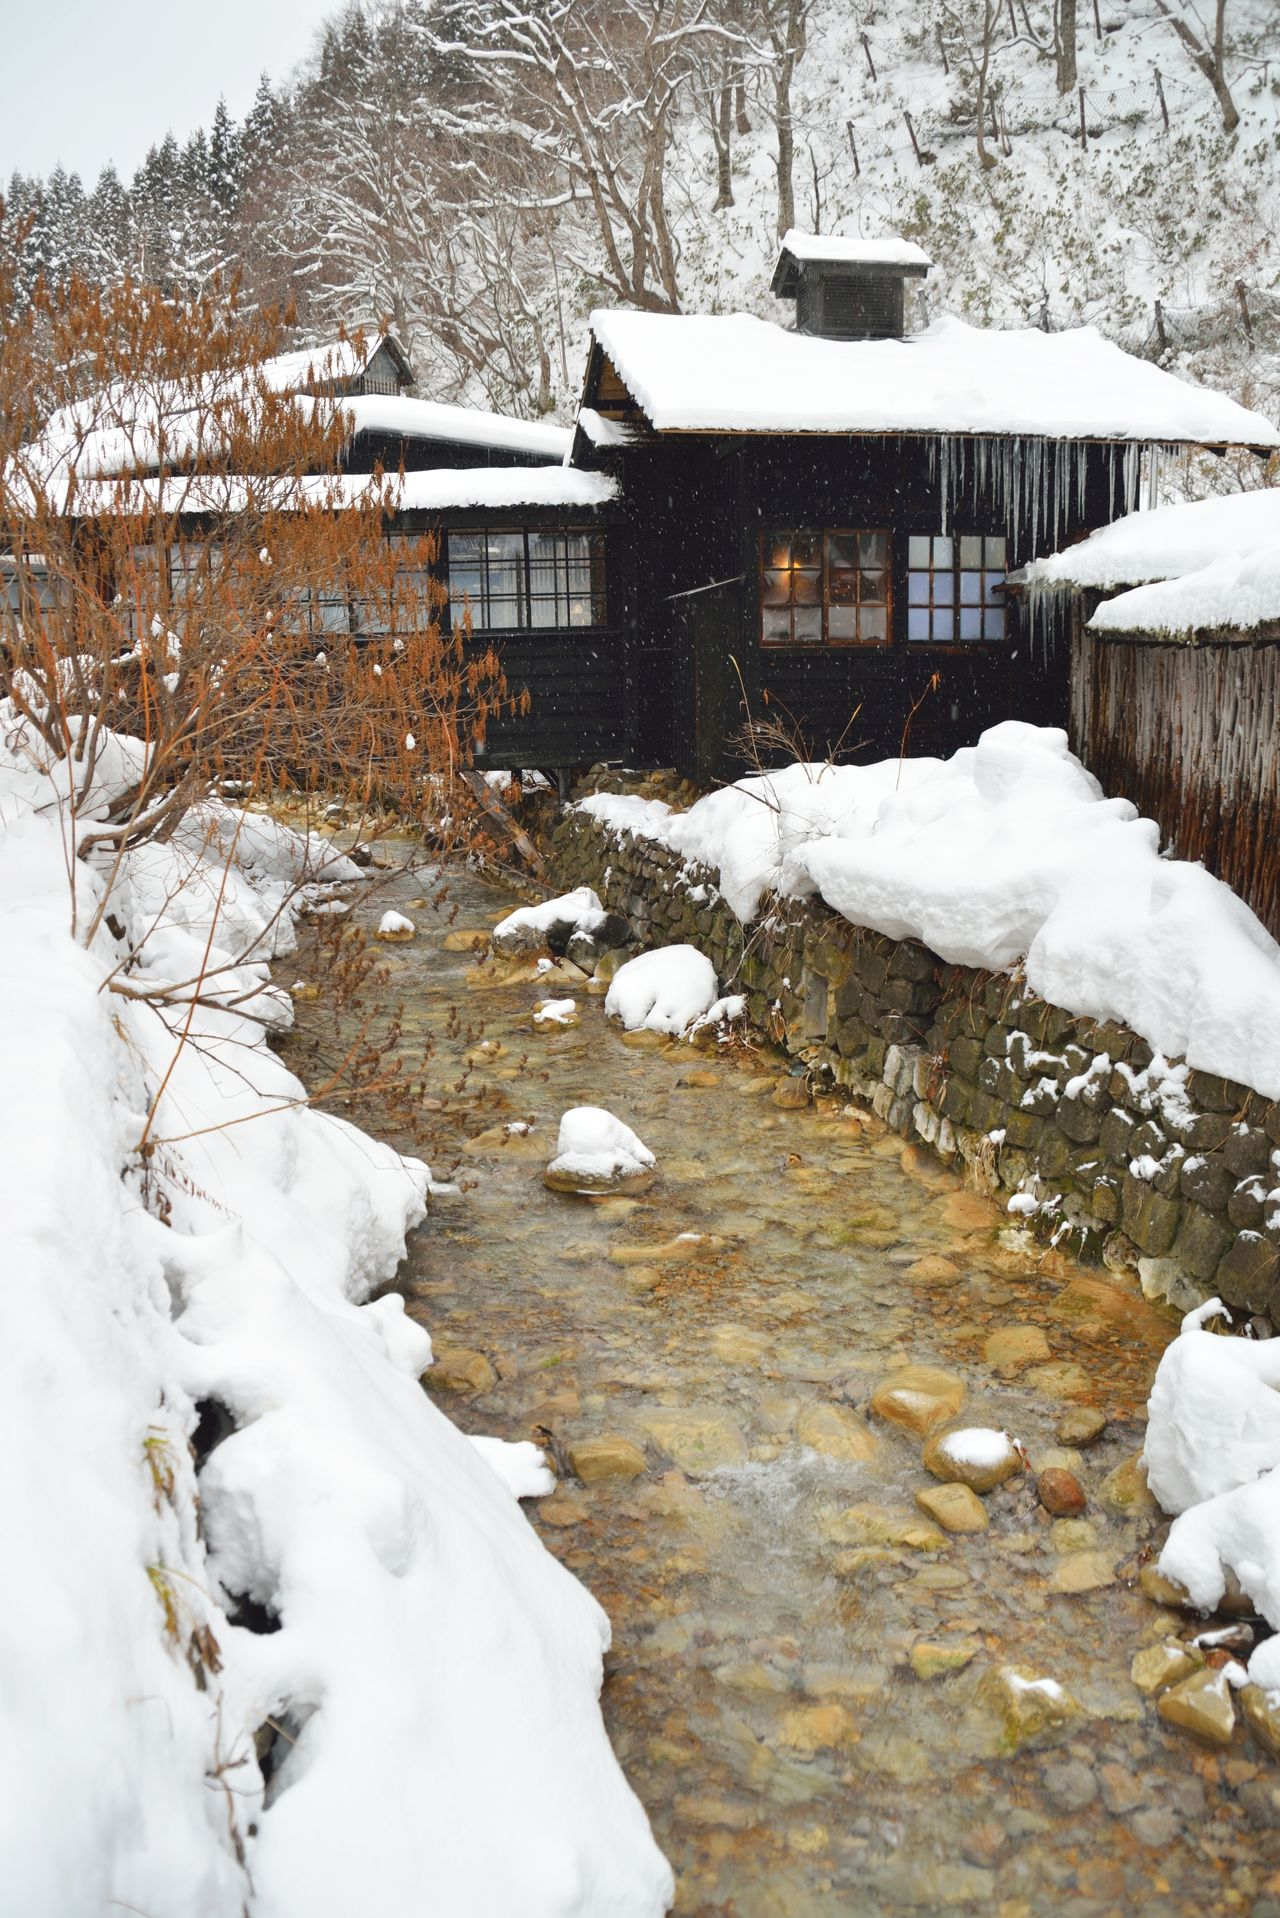 Small river flowing by an onsen in winter in Akita, Japan. Akita Beauty In Nature Cold Temperature Day Frozen Ice Japan Japan Photography Japanese Culture Nature No People Onsen Outdoors Relaxation River Sky Snow Snowing Stream Tohoku Weather White Color Winter